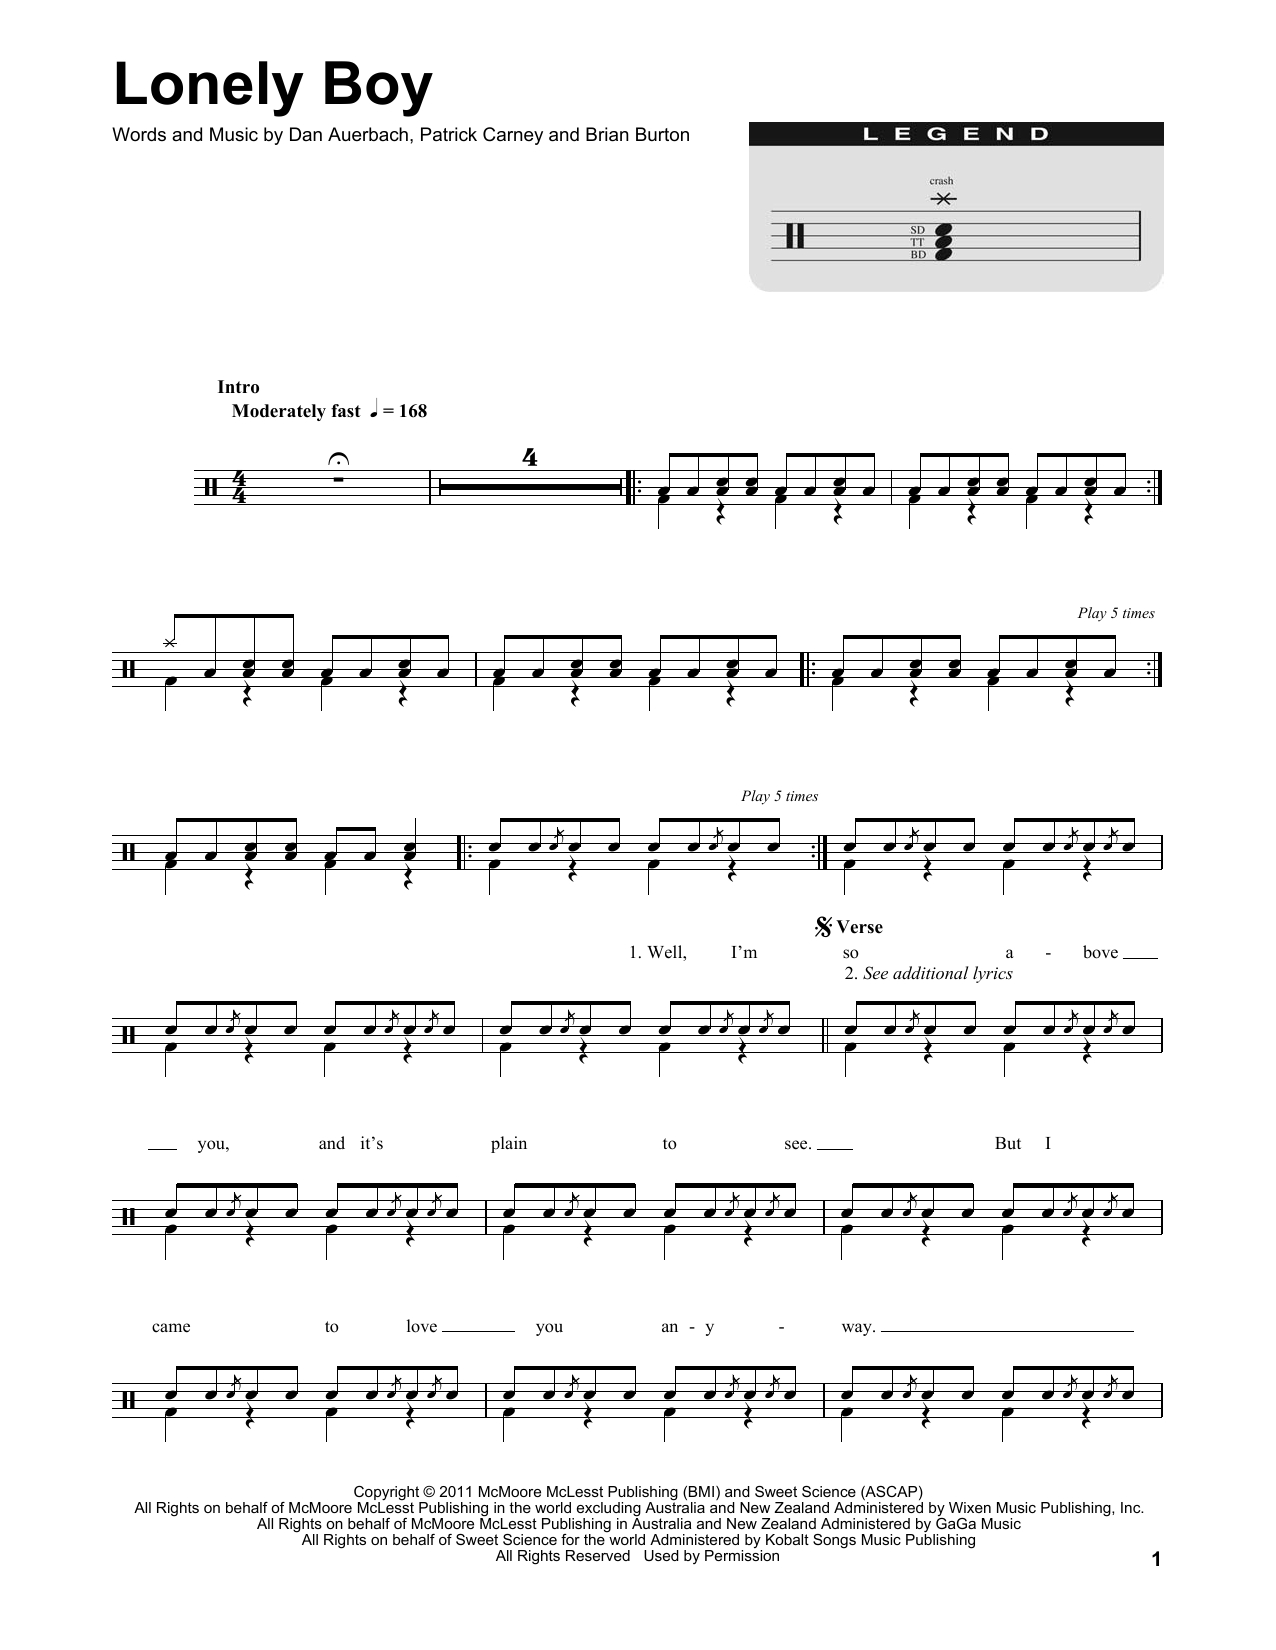 Little Black Submarines Chords Sheet Music Digital Files To Print Licensed The Black Keys Digital